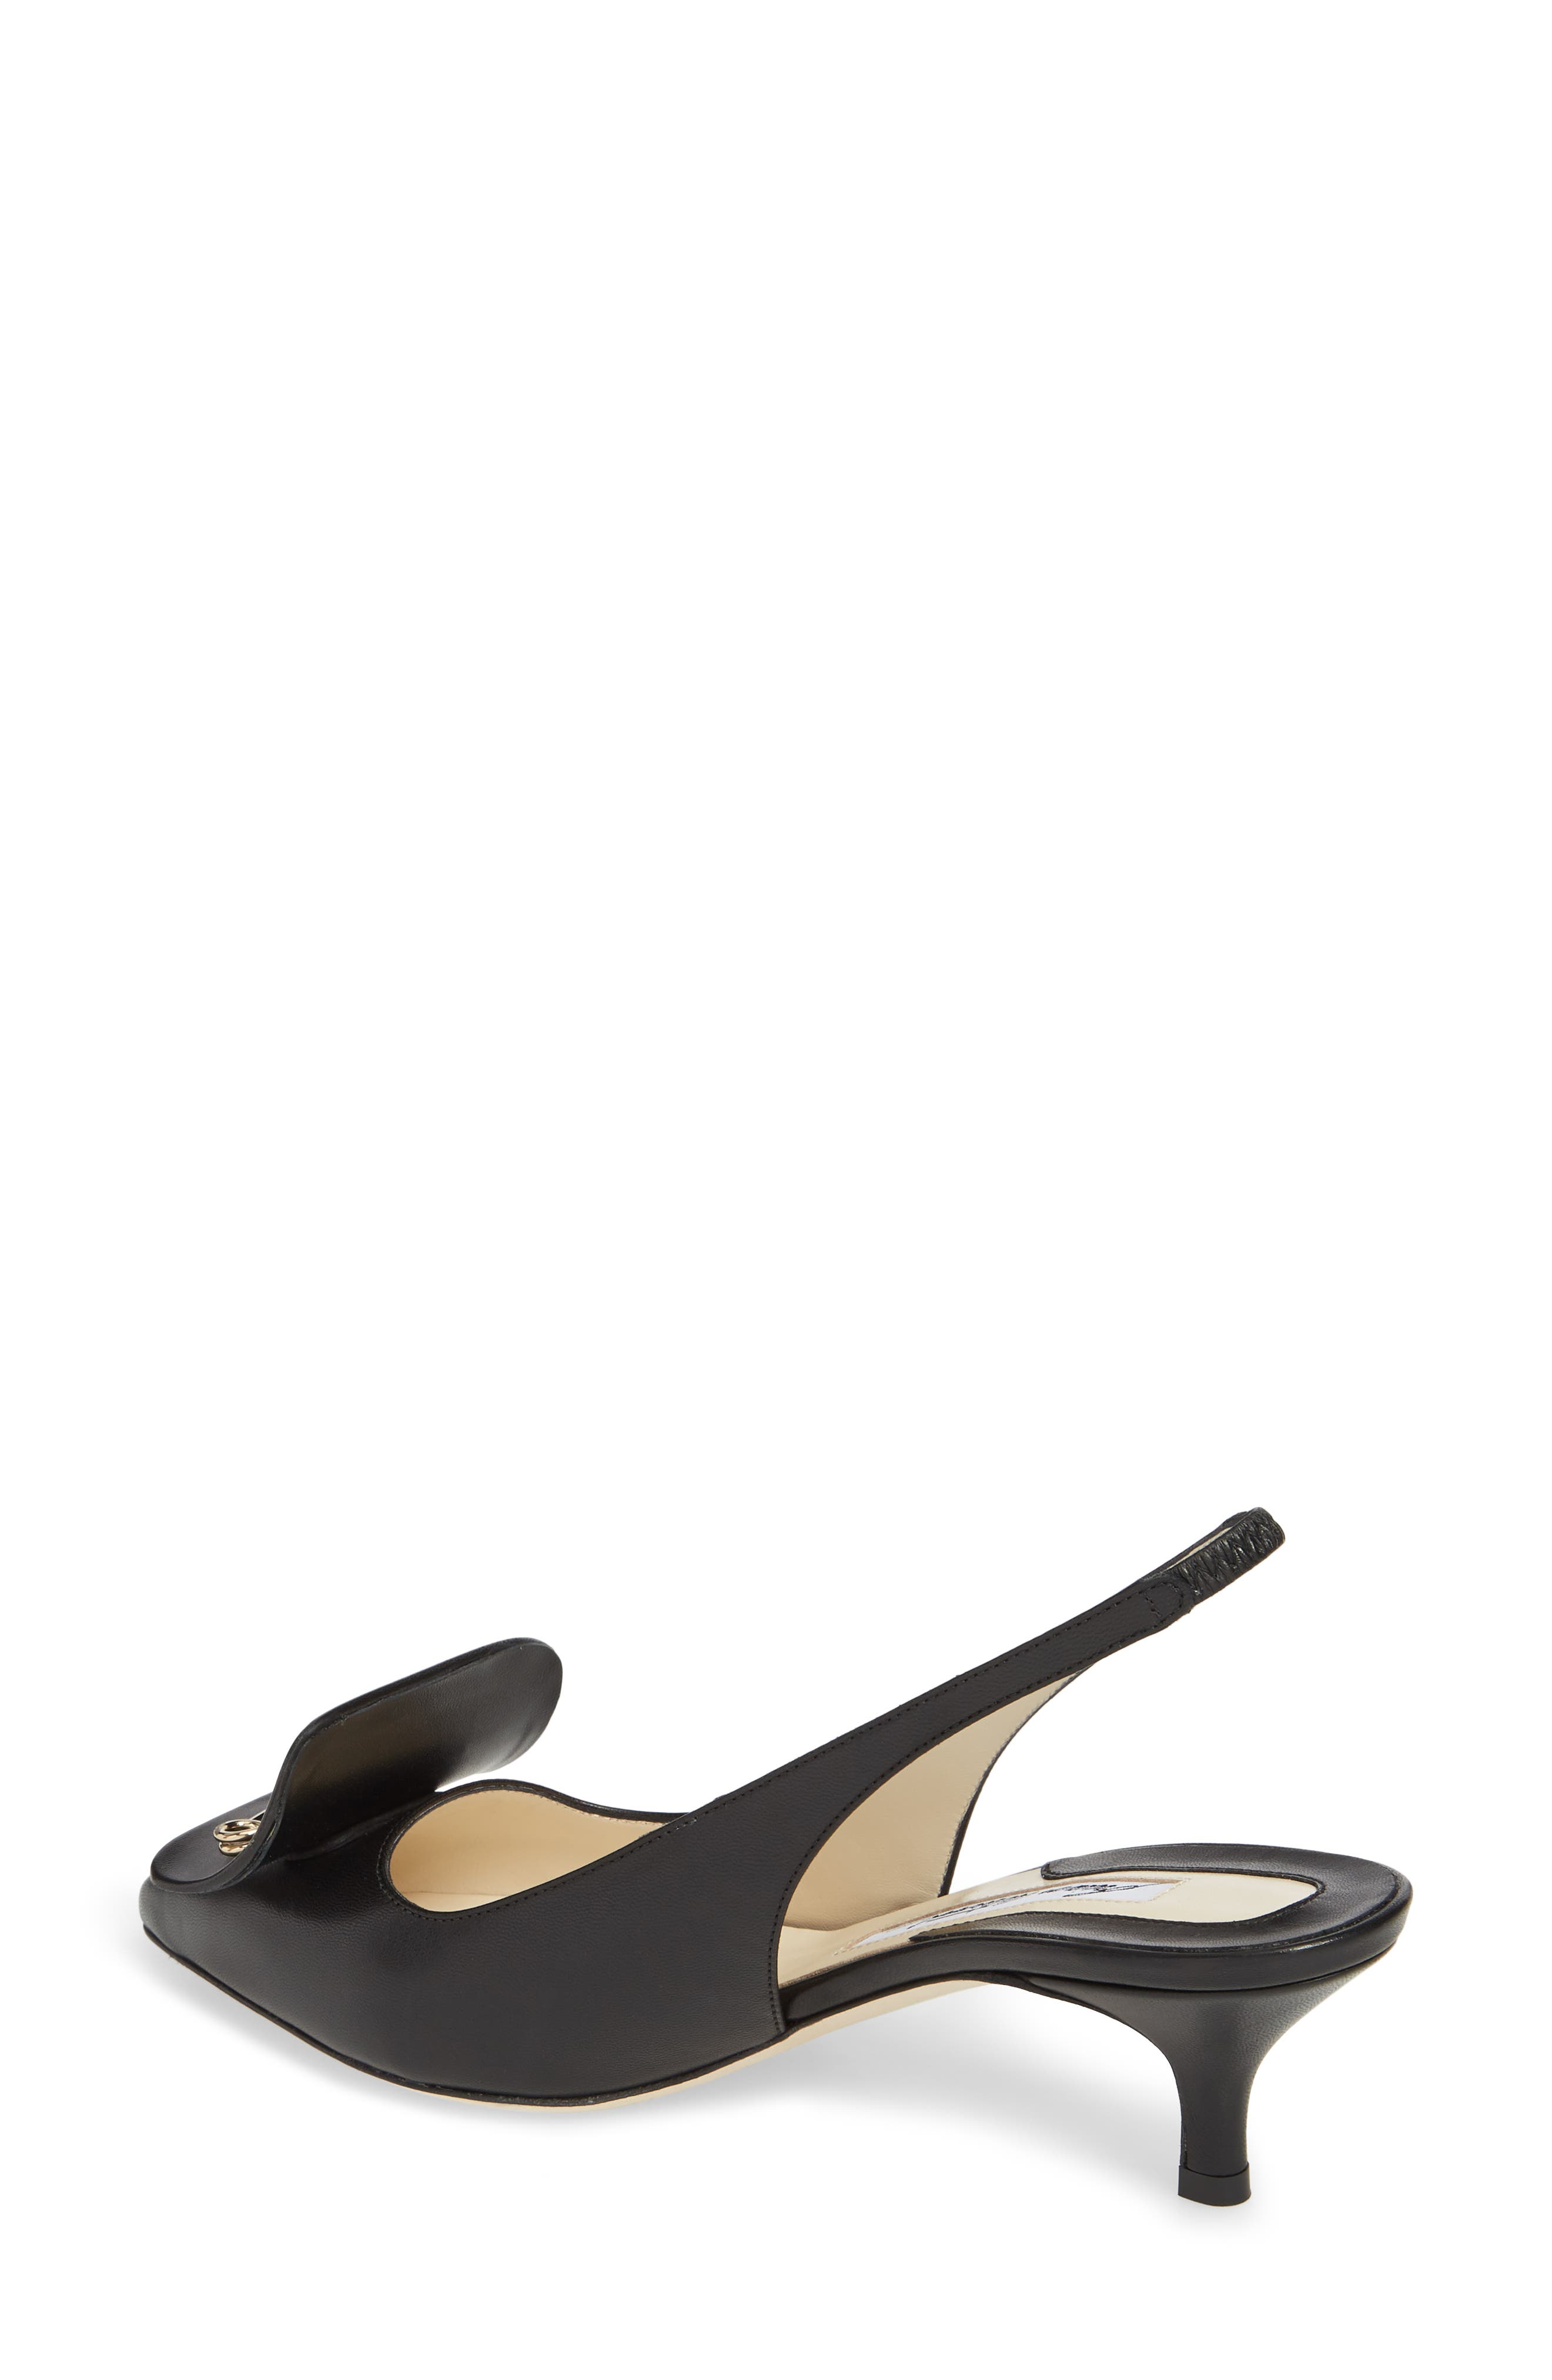 Guiliaa Slingback Pump,                             Alternate thumbnail 2, color,                             BLACK NAPPA